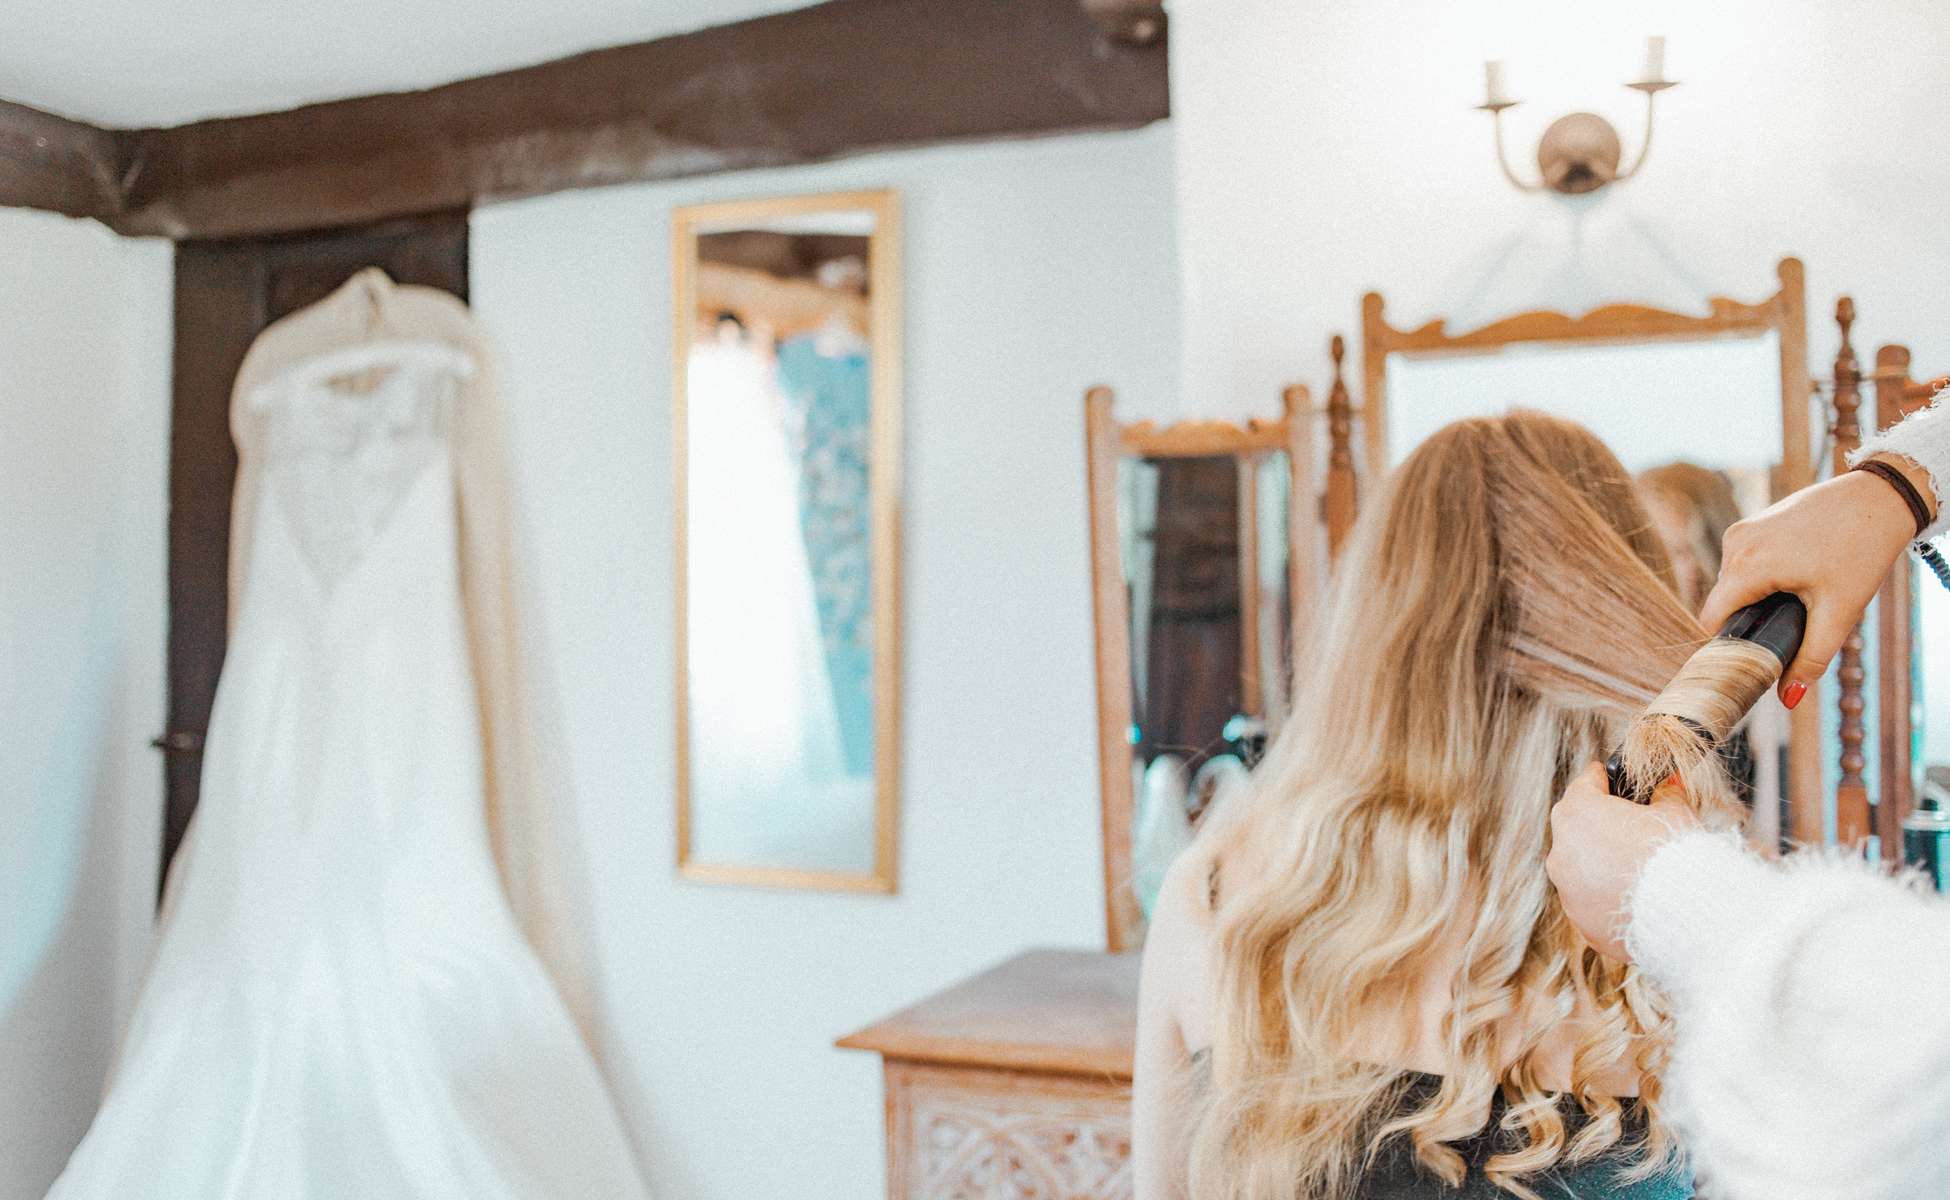 Curling hair before wedding by Hanne Brooks Photography